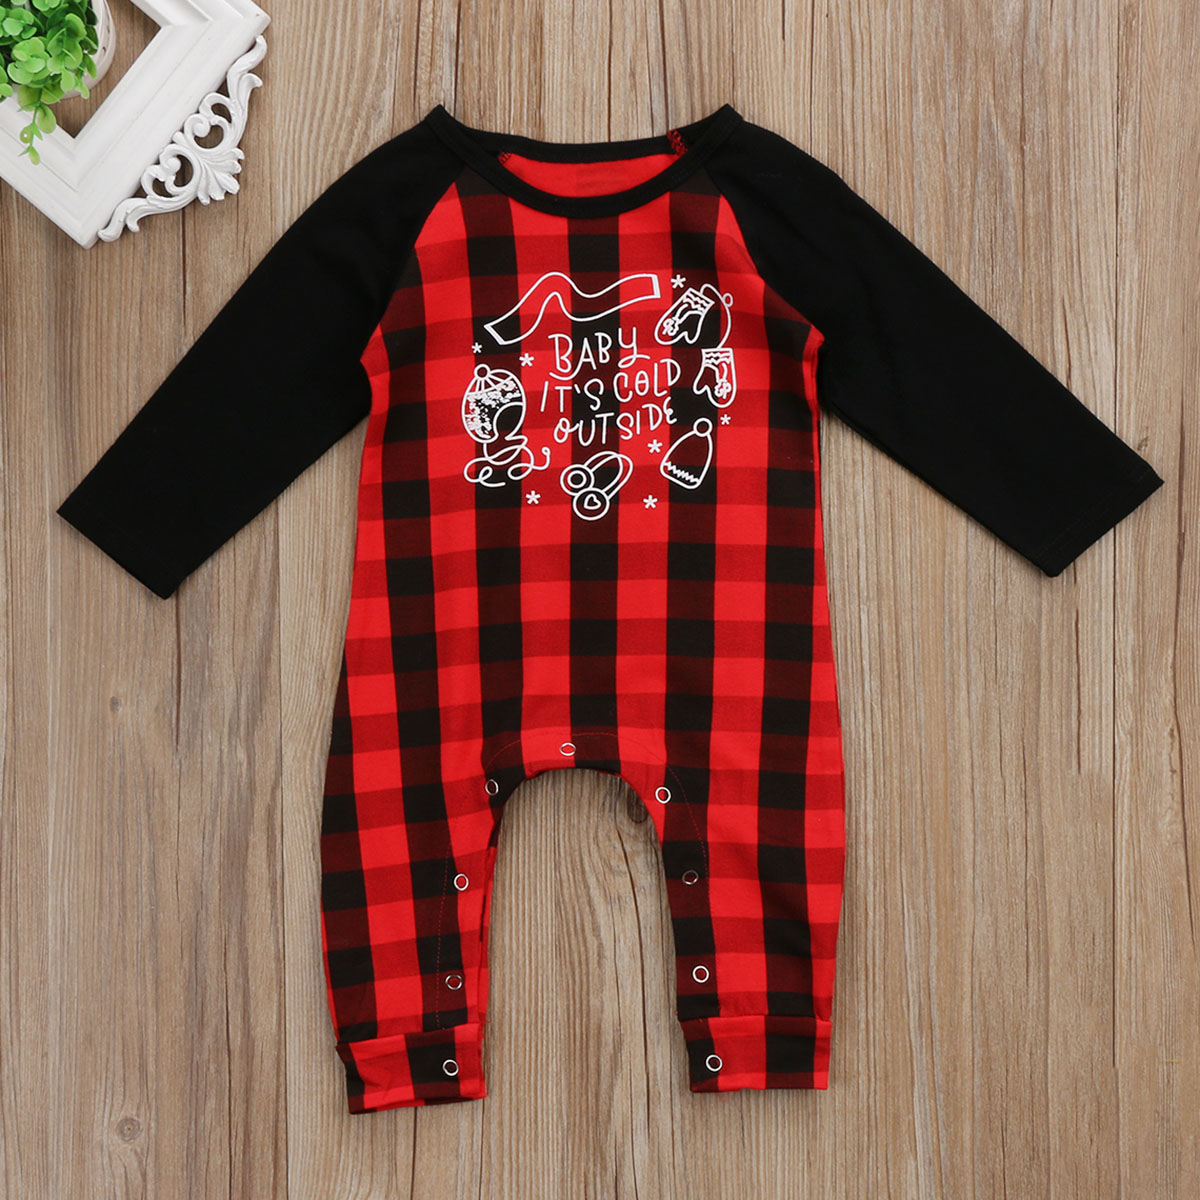 Toddler Newborn Baby Boy Girl Plaid Romper Jumpsuit Playsuit Long Sleeve Autumn Cotton Infant Clothes newborn infant baby boy girl cotton romper jumpsuit boys girl angel wings long sleeve rompers white gray autumn clothes outfit